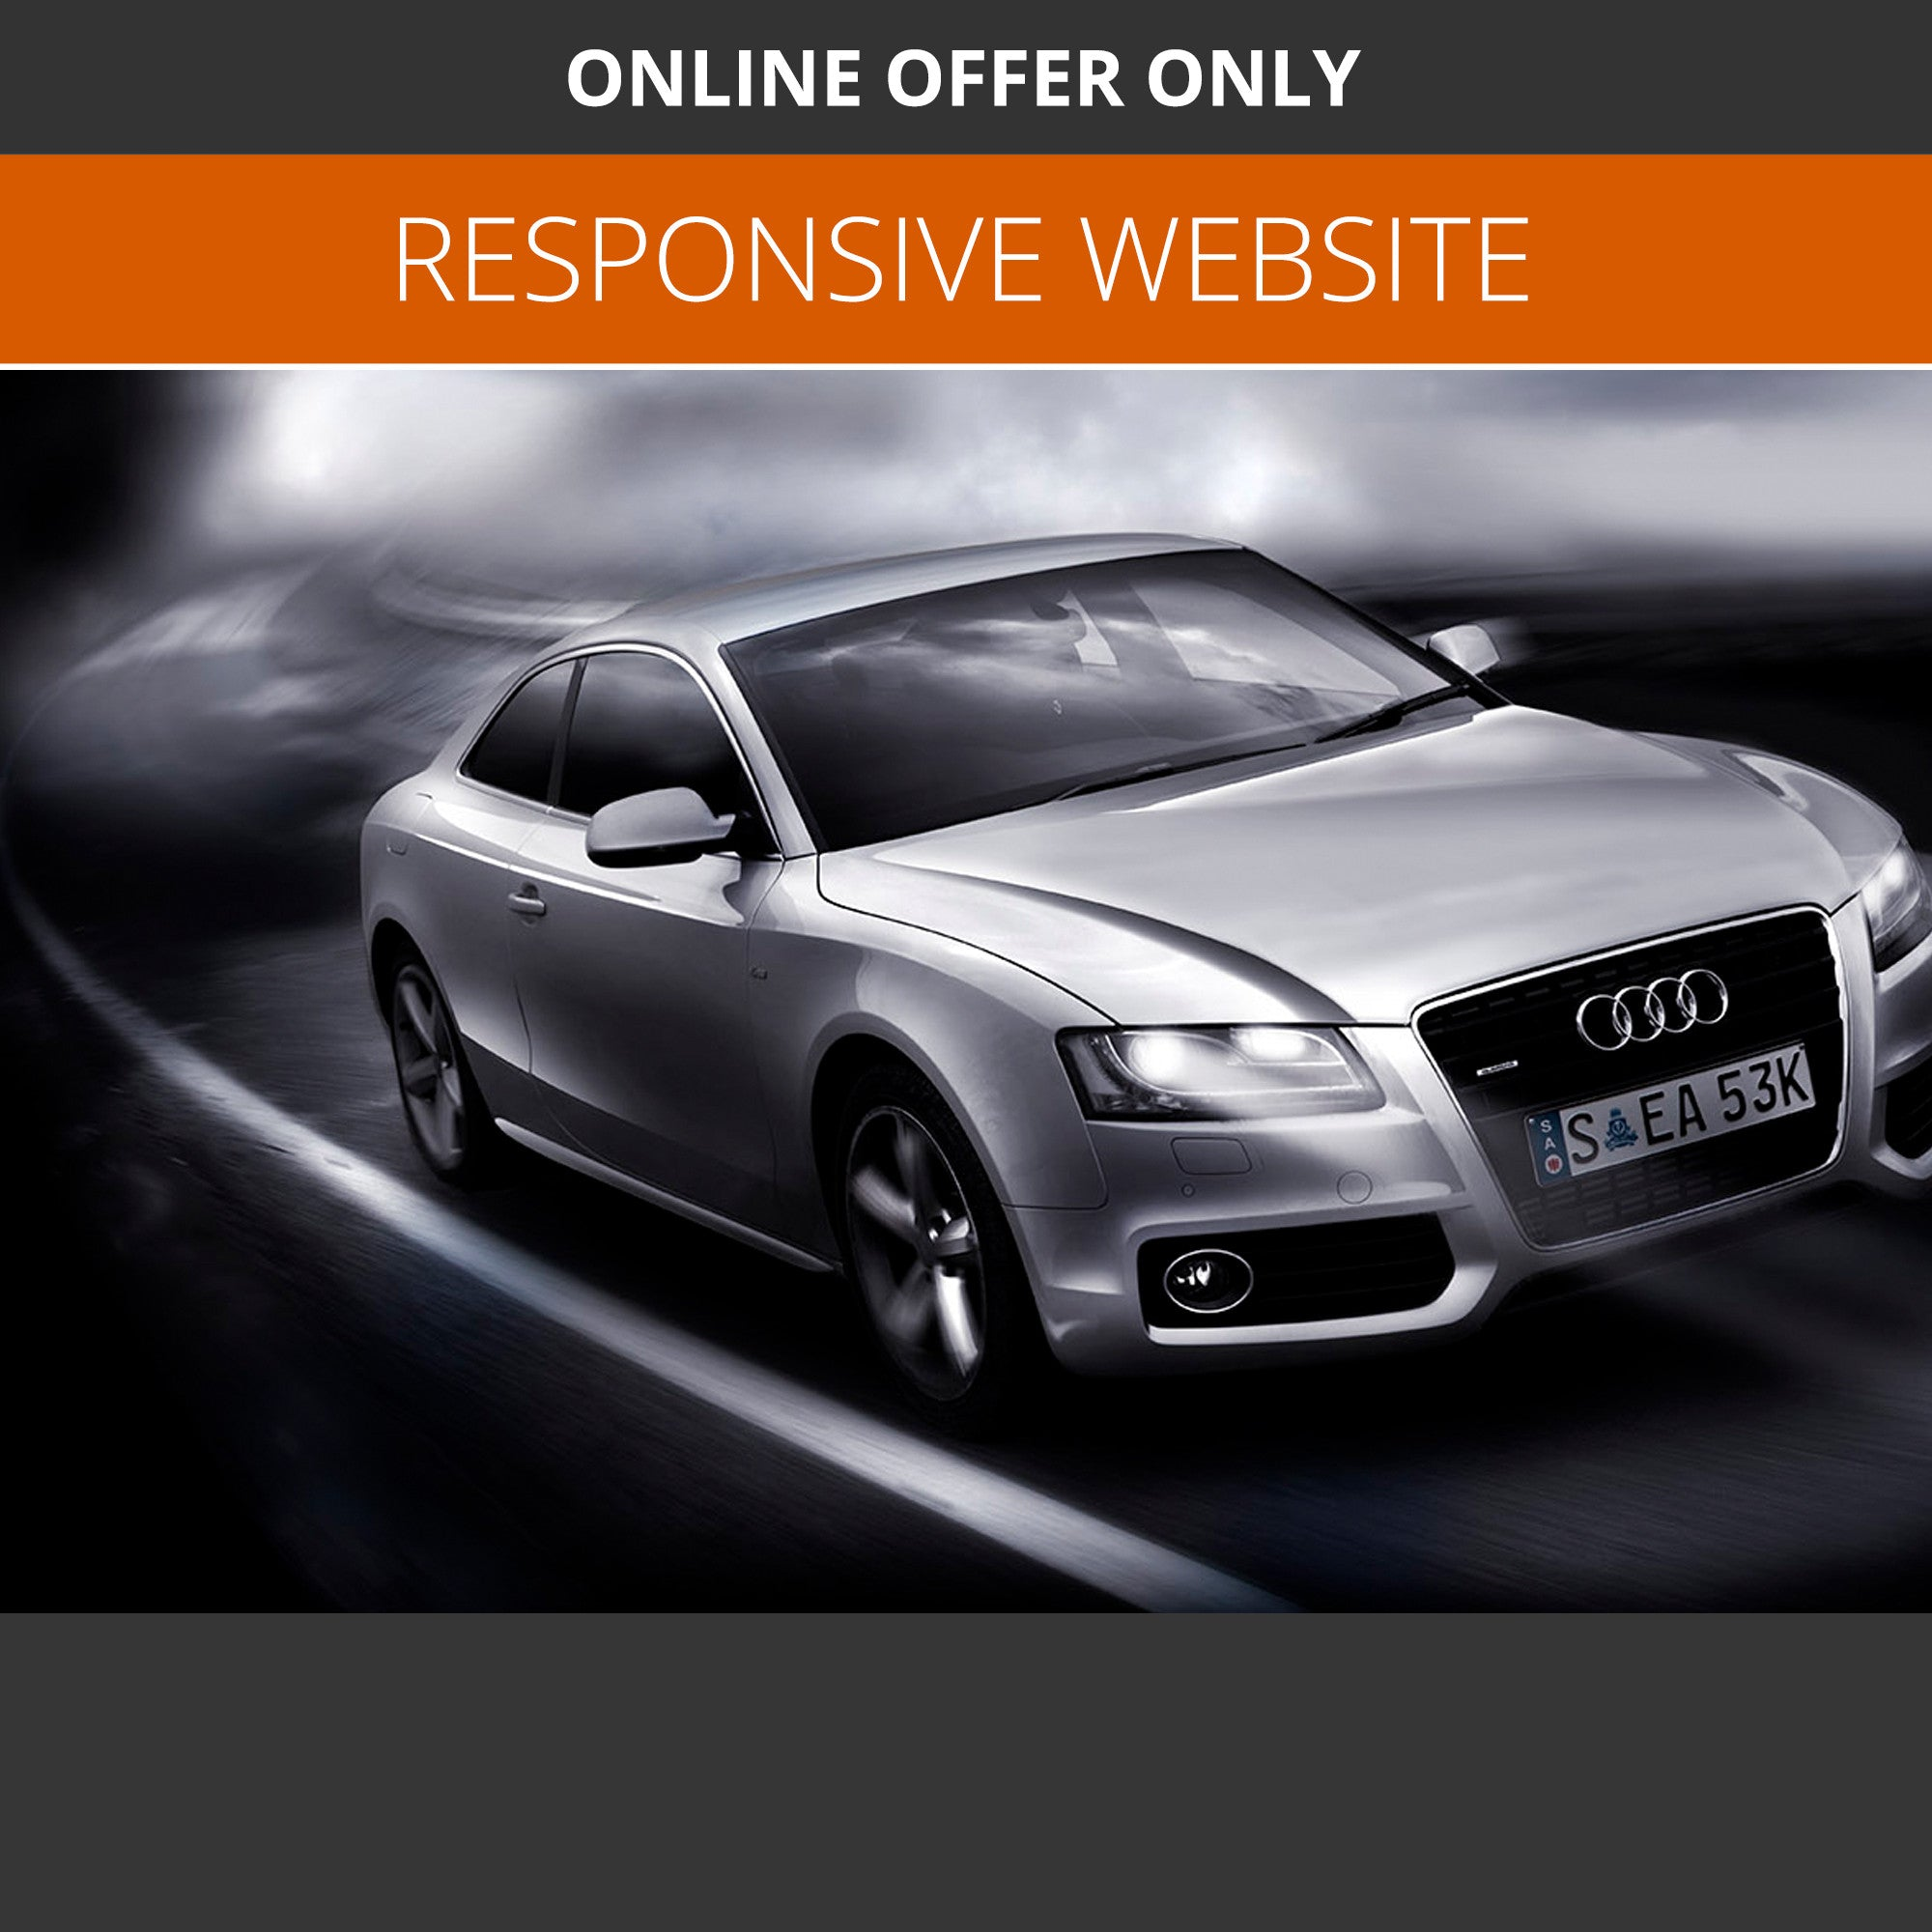 BLUE PACKAGE - NEW CAR DEALER WEBSITE